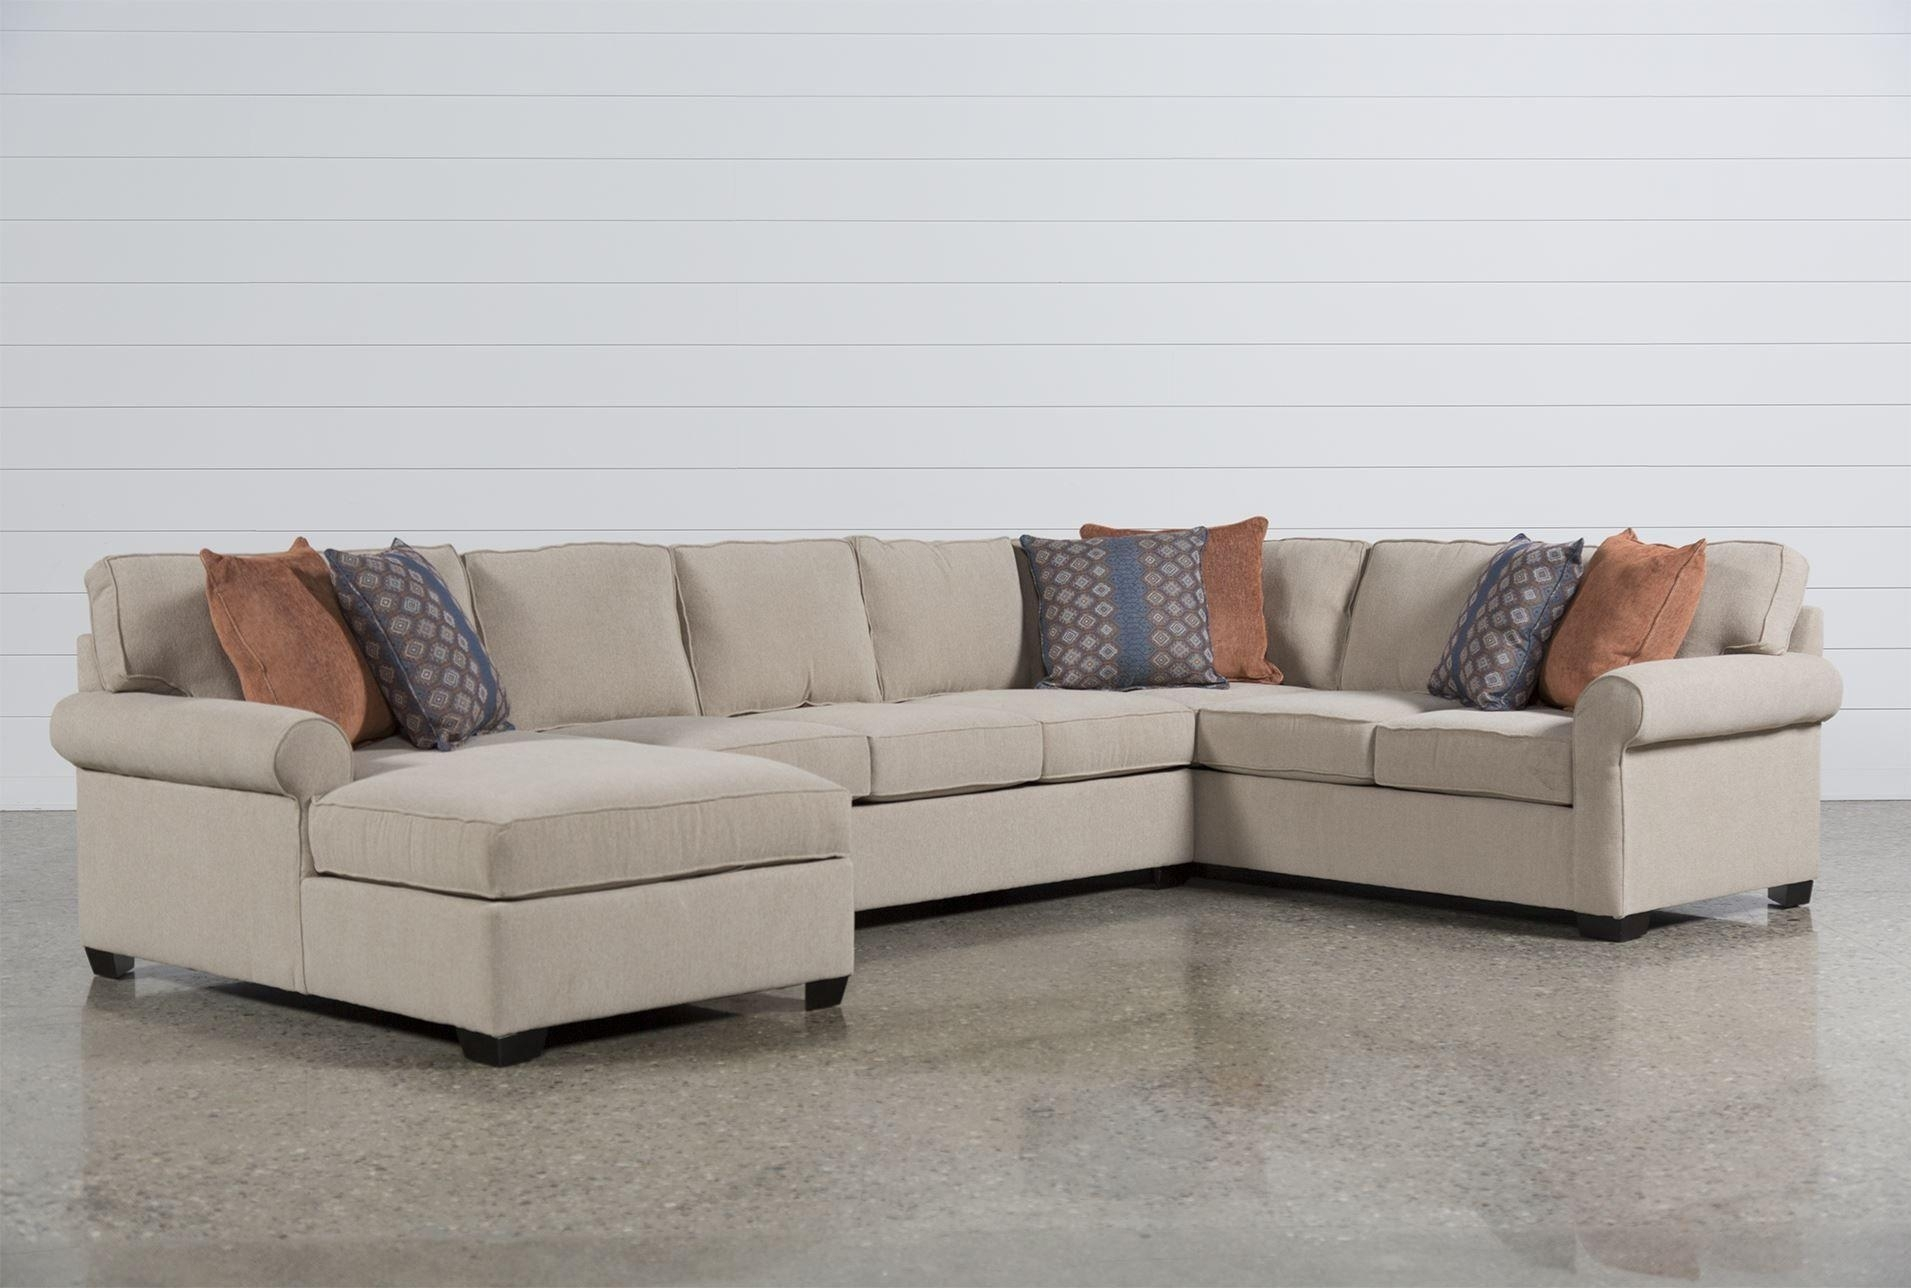 Furniture : Target Loveseat Unique Glamour Ii 3 Piece Sectional Intended For Target Sectional Sofas (View 6 of 10)